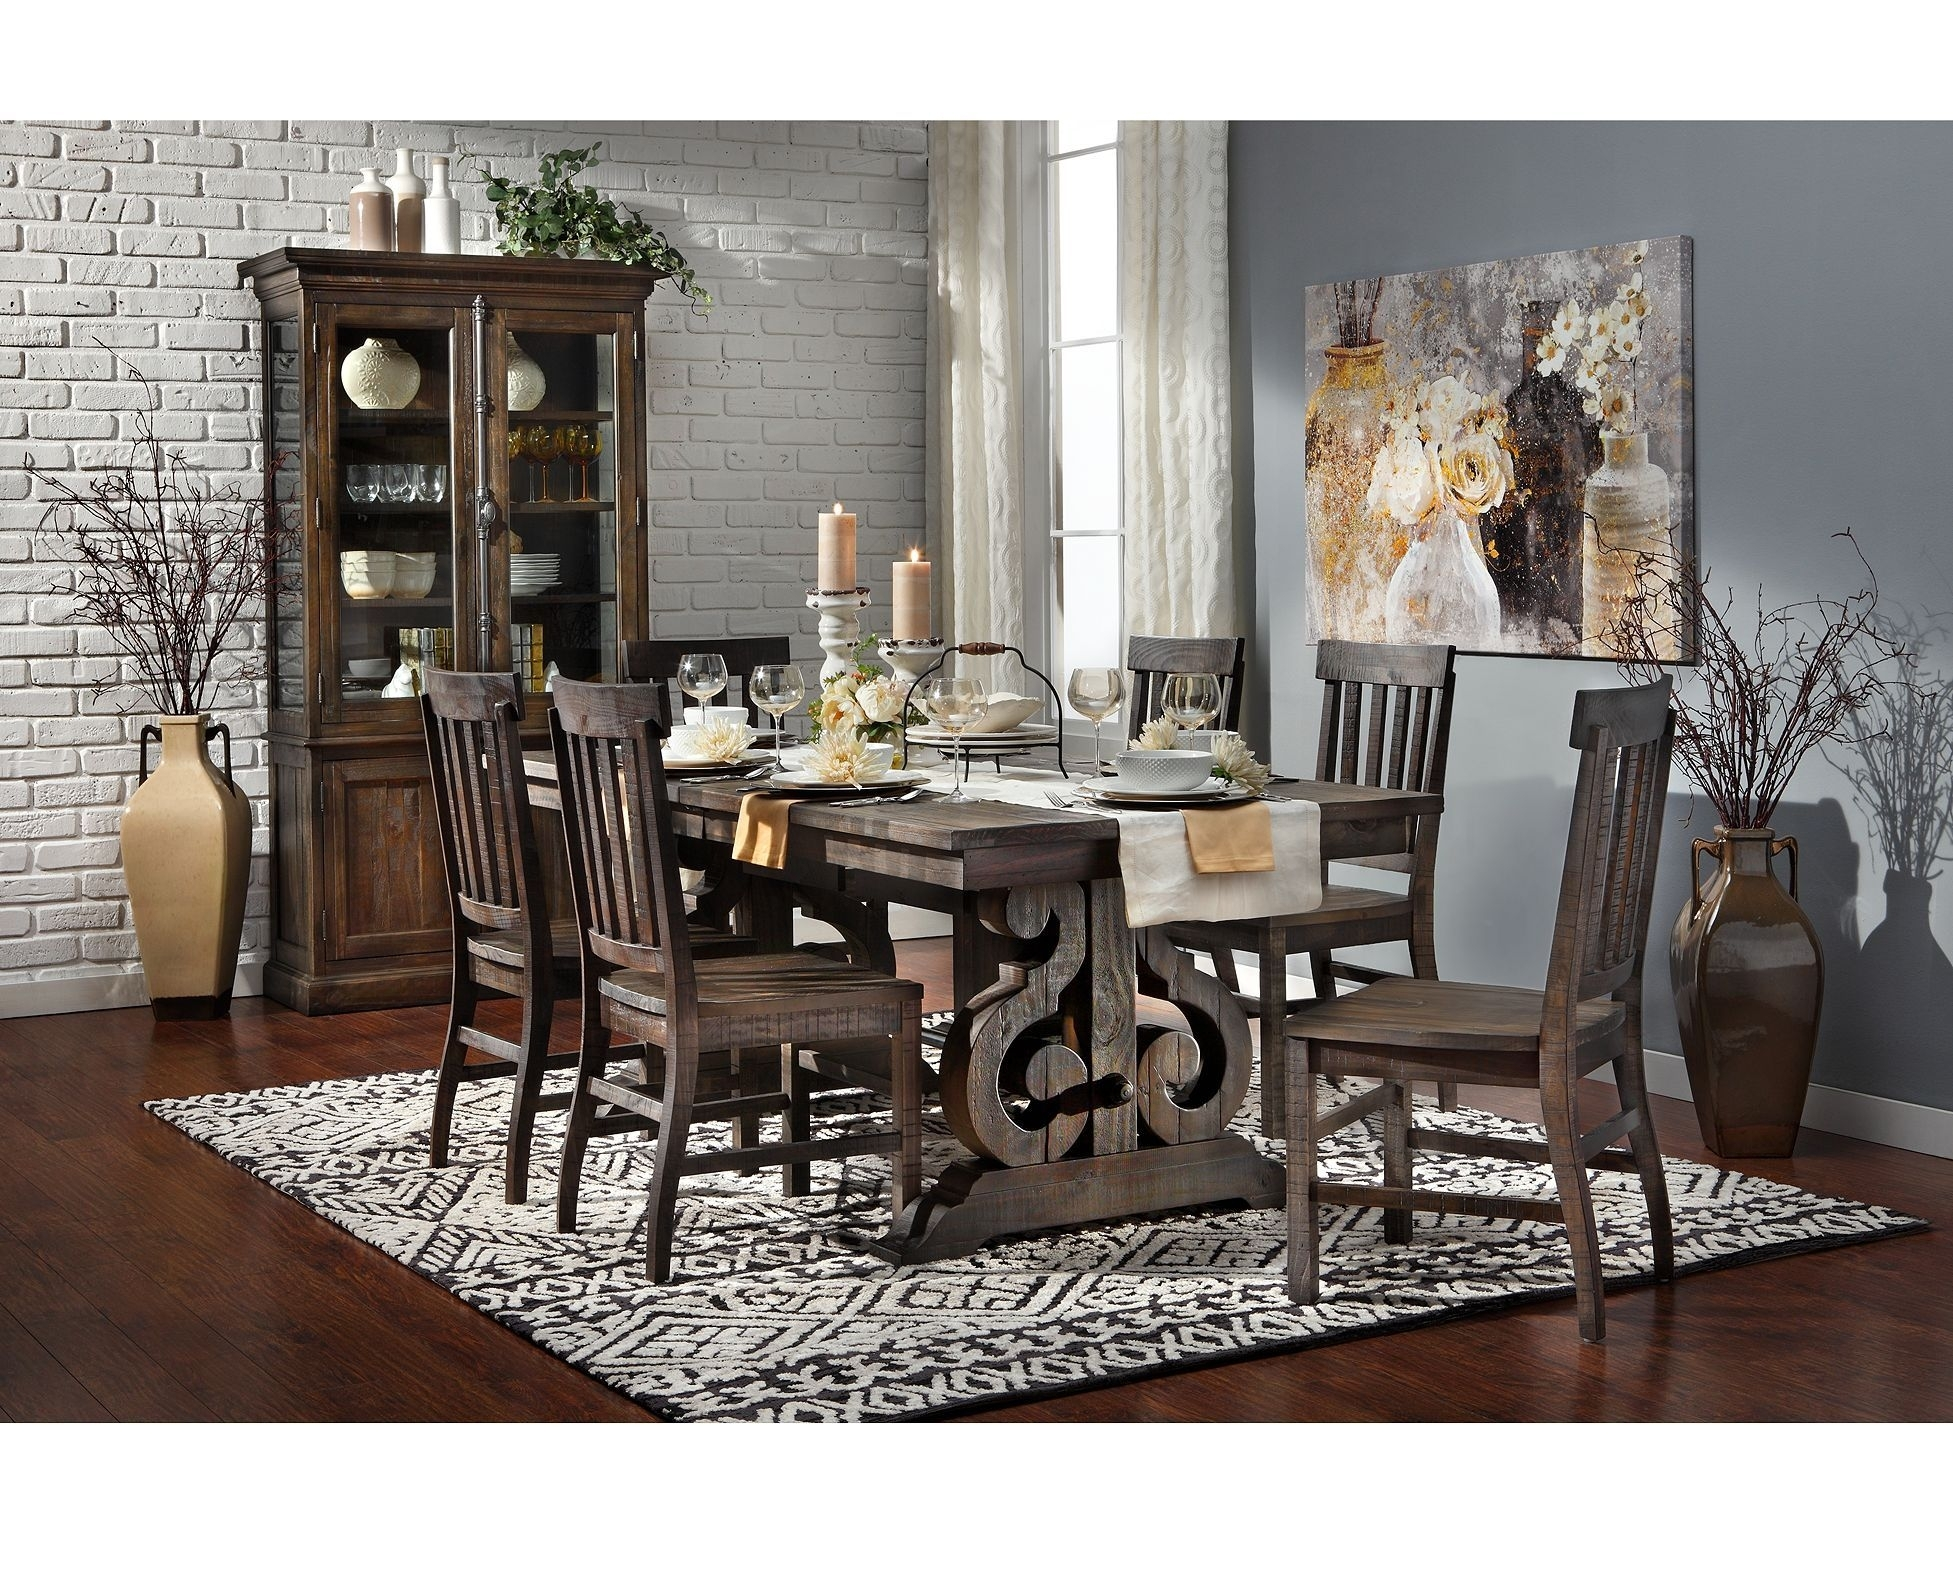 Sedona Dining Table | Dining Room | Pinterest | Dining, Magnolia In Current Candice Ii 7 Piece Extension Rectangular Dining Sets With Slat Back Side Chairs (View 16 of 20)